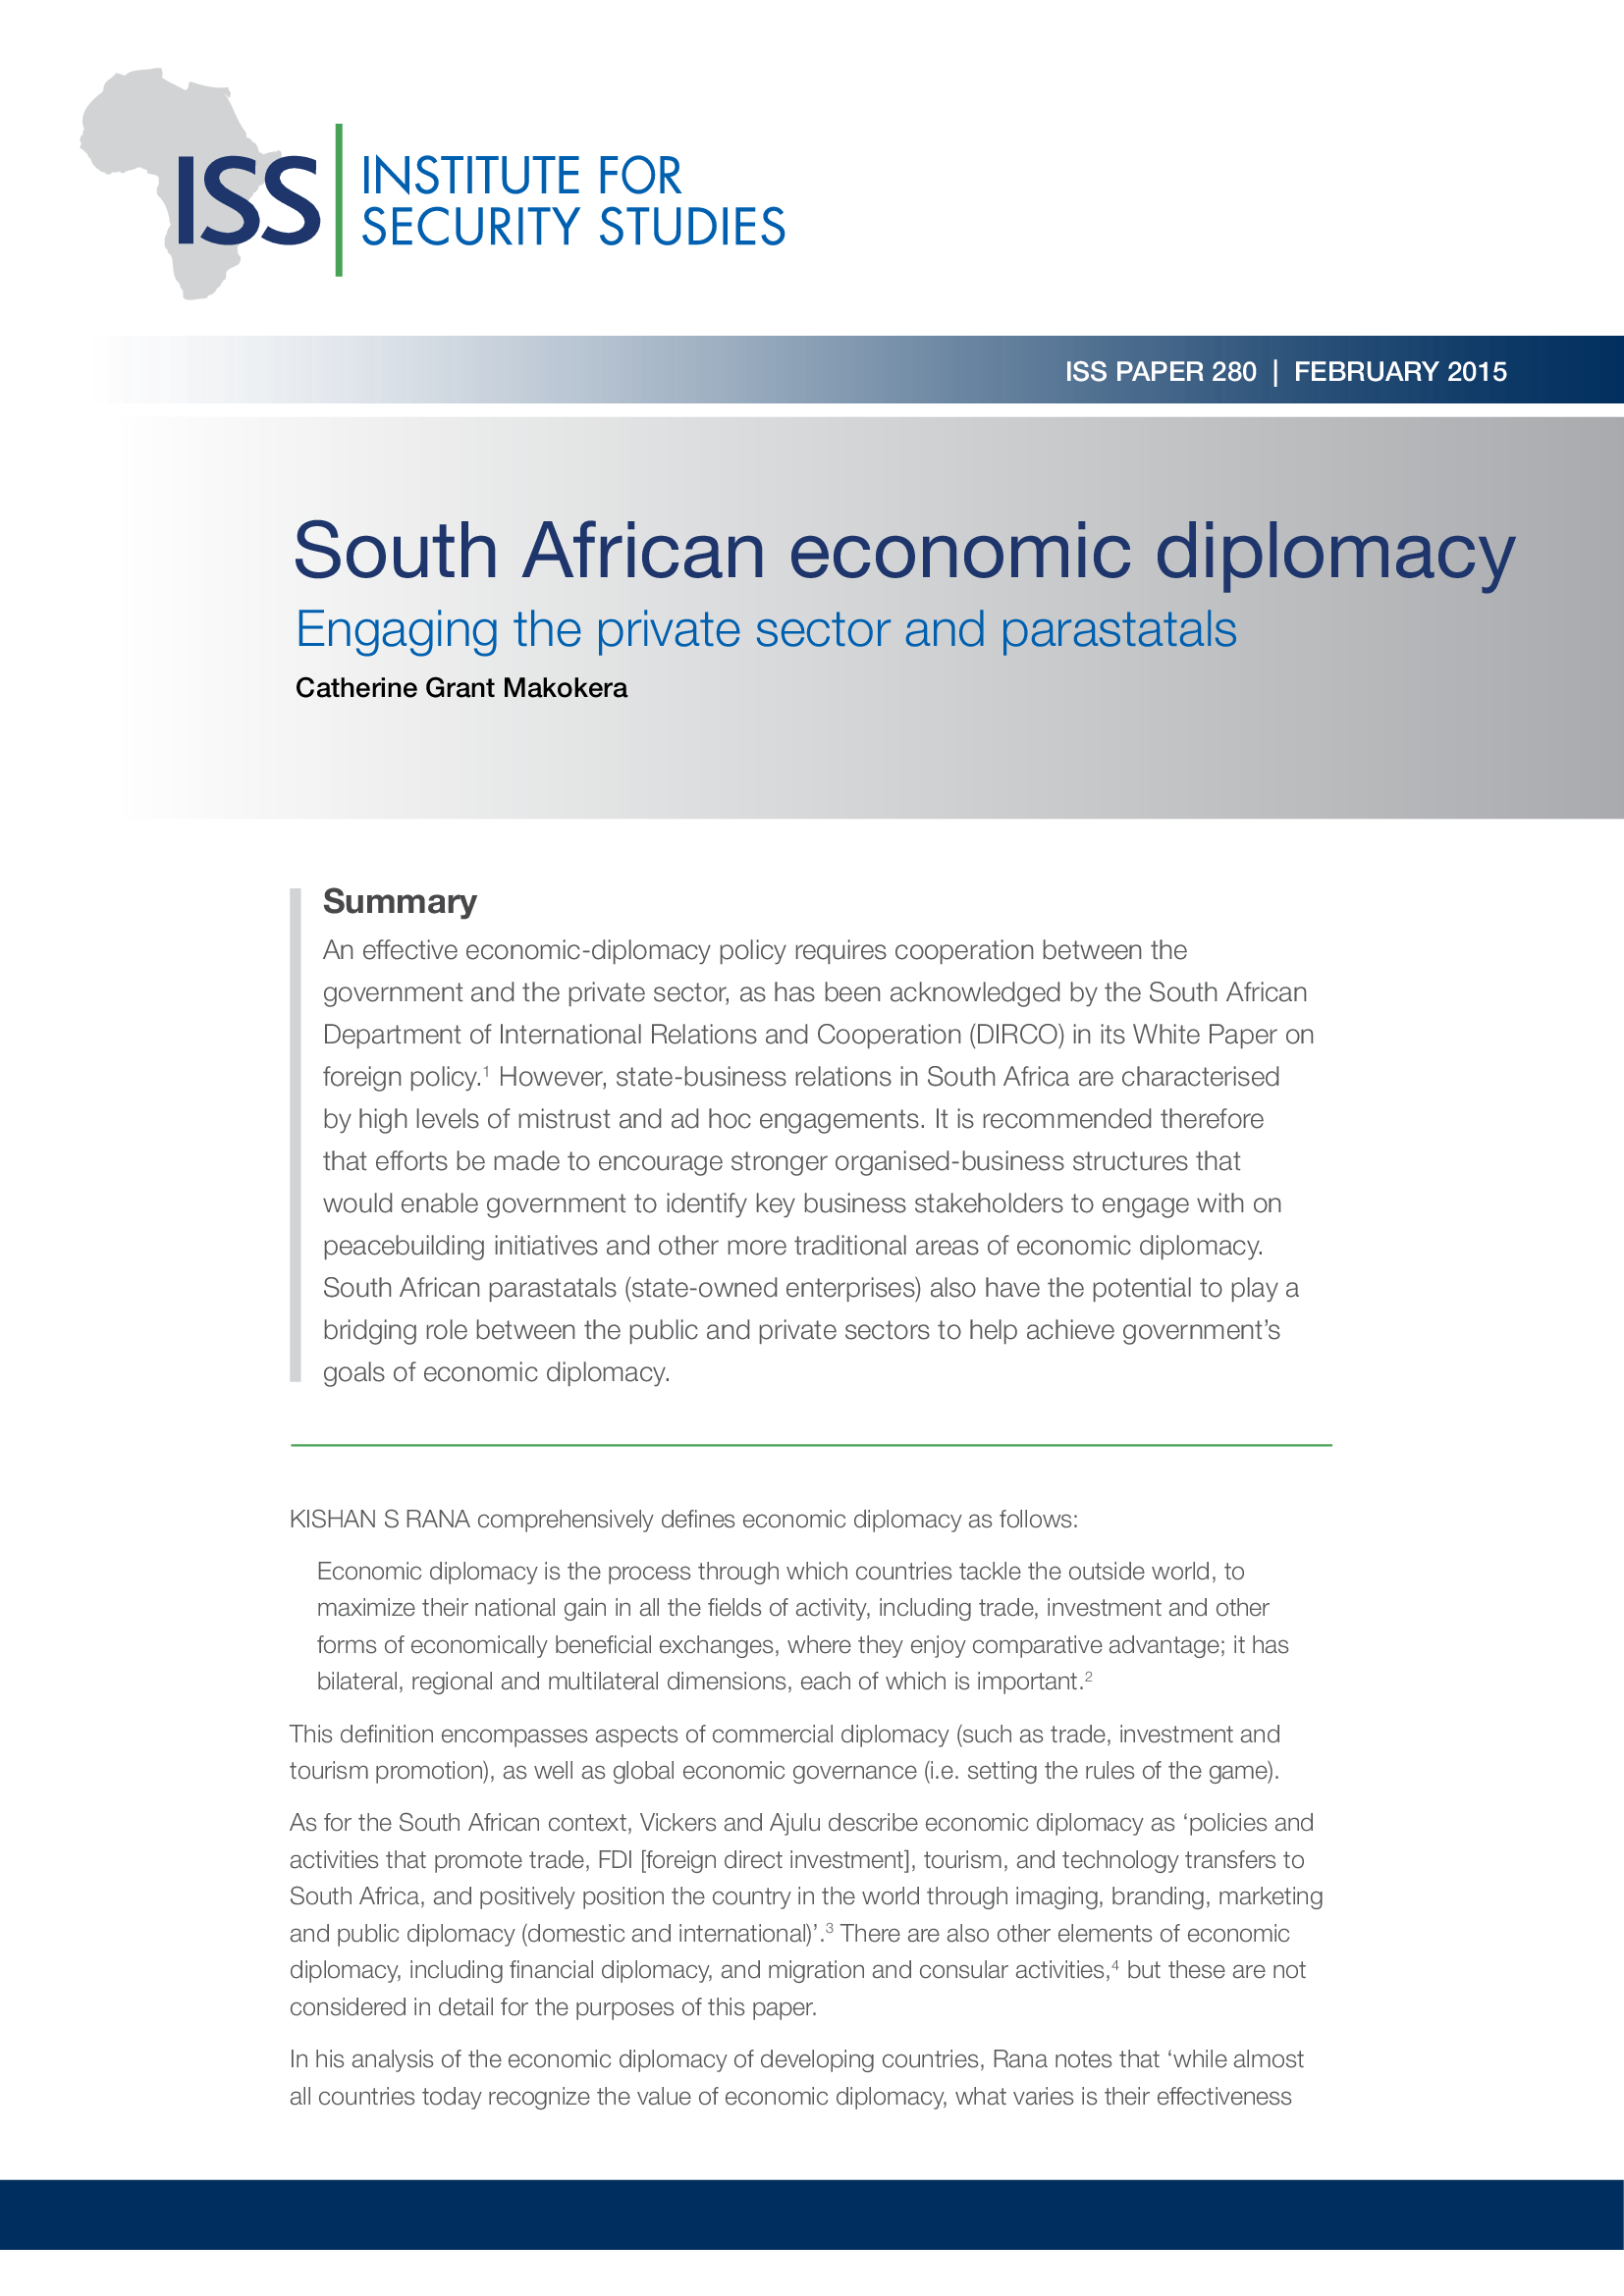 Institute for Security Studies - South African Economic Diplomacy